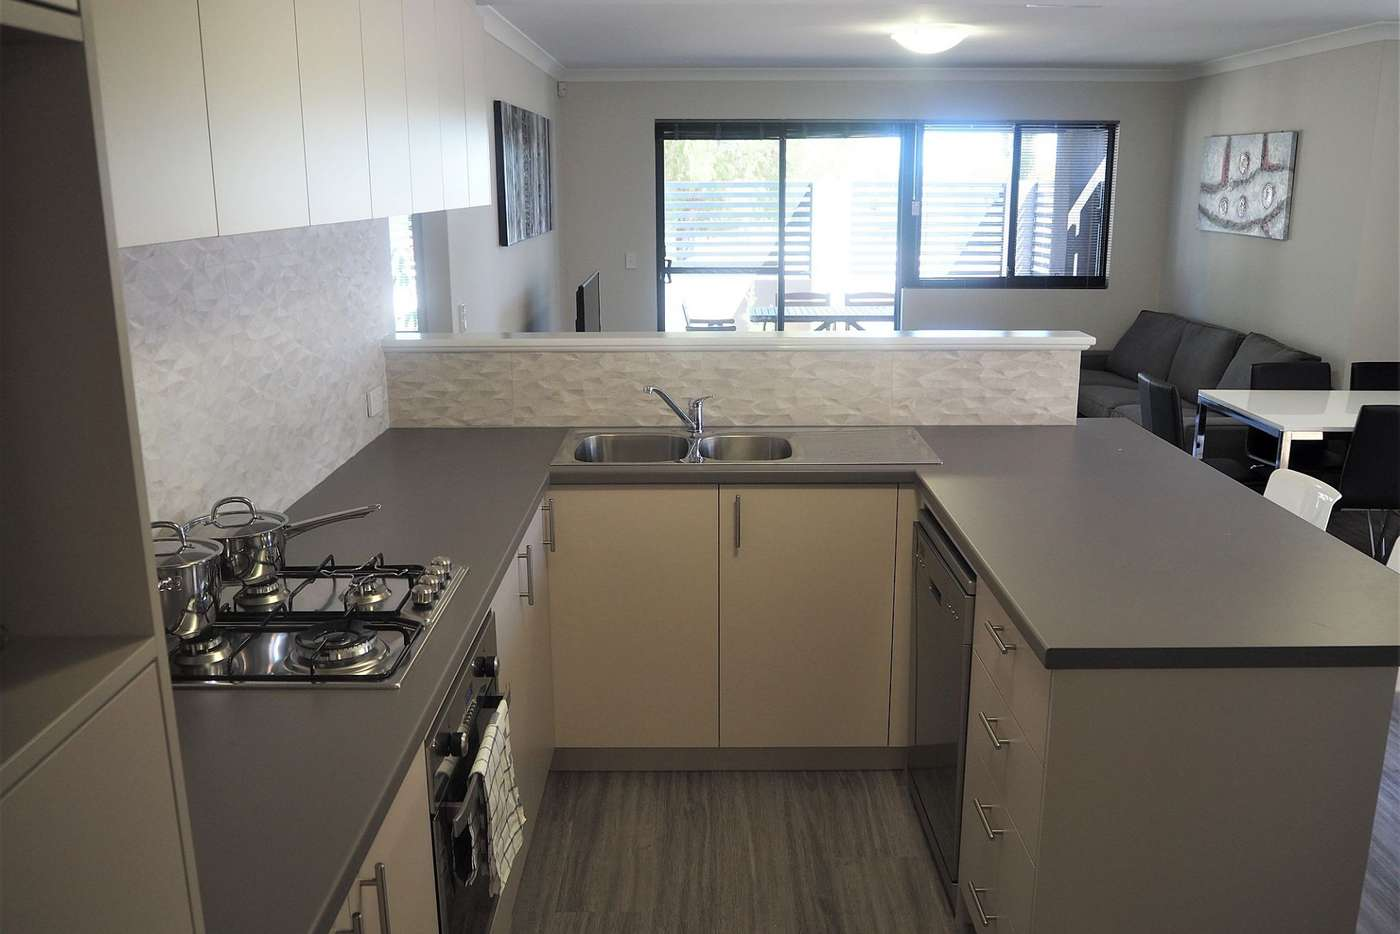 Sixth view of Homely house listing, 10E Page Ave, Bentley WA 6102